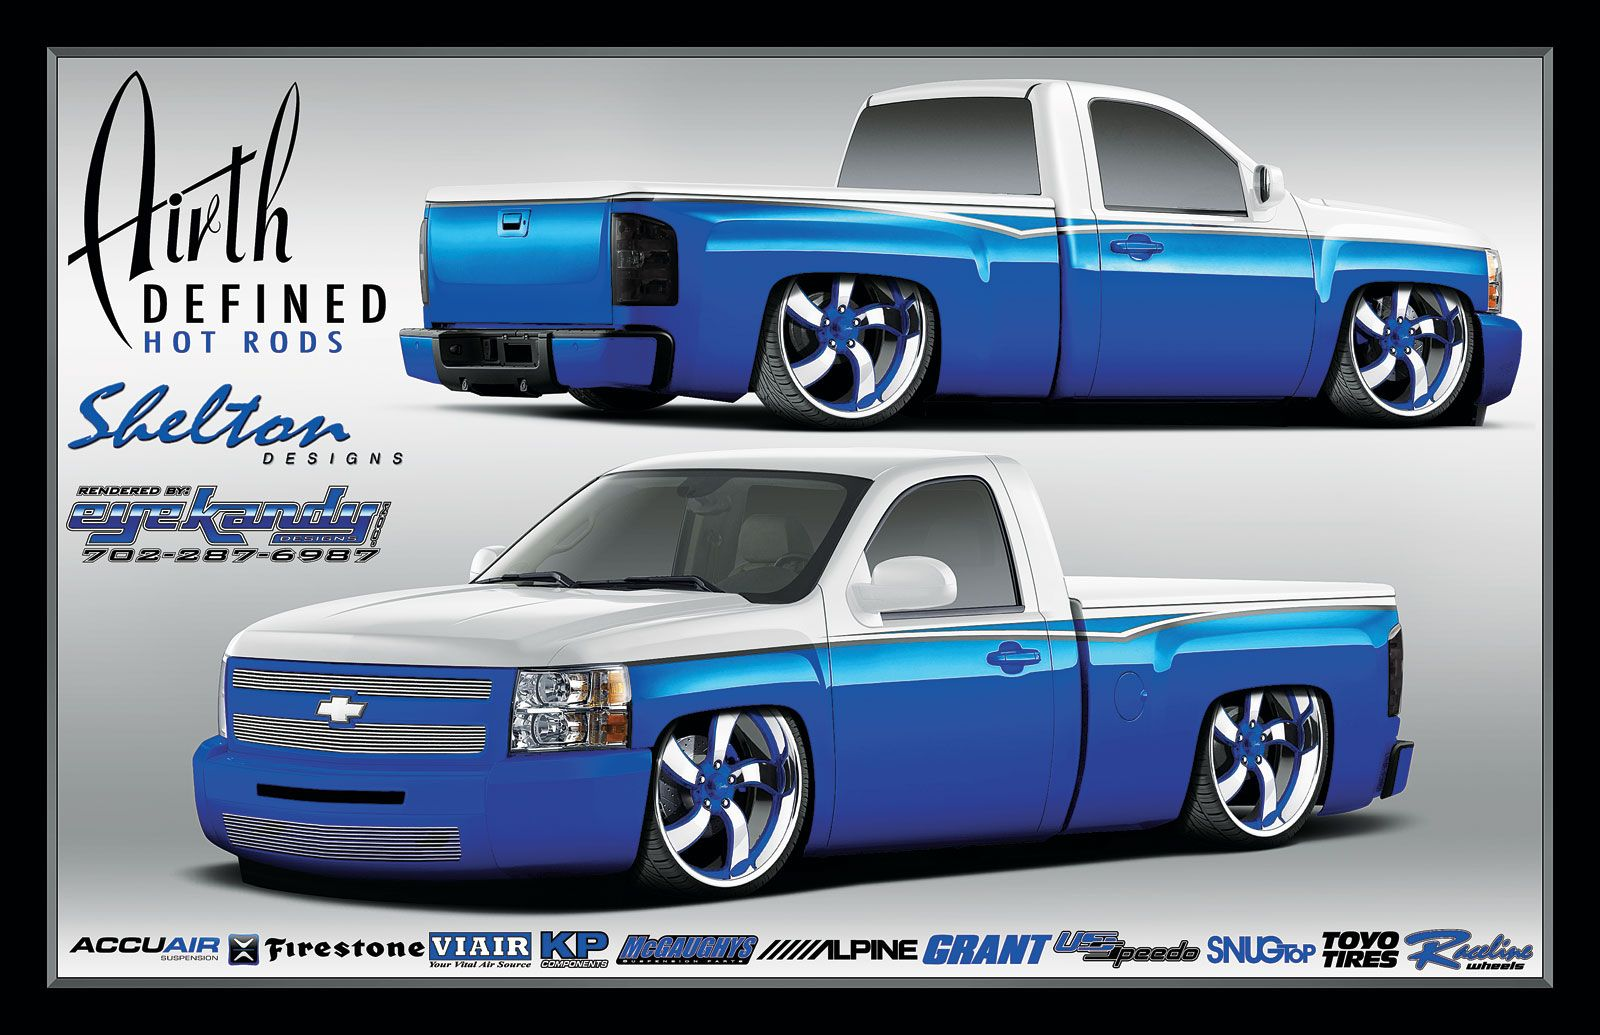 Best Car Paint Colors >> Custom Truck Paint Designs | www.pixshark.com - Images Galleries With A Bite!